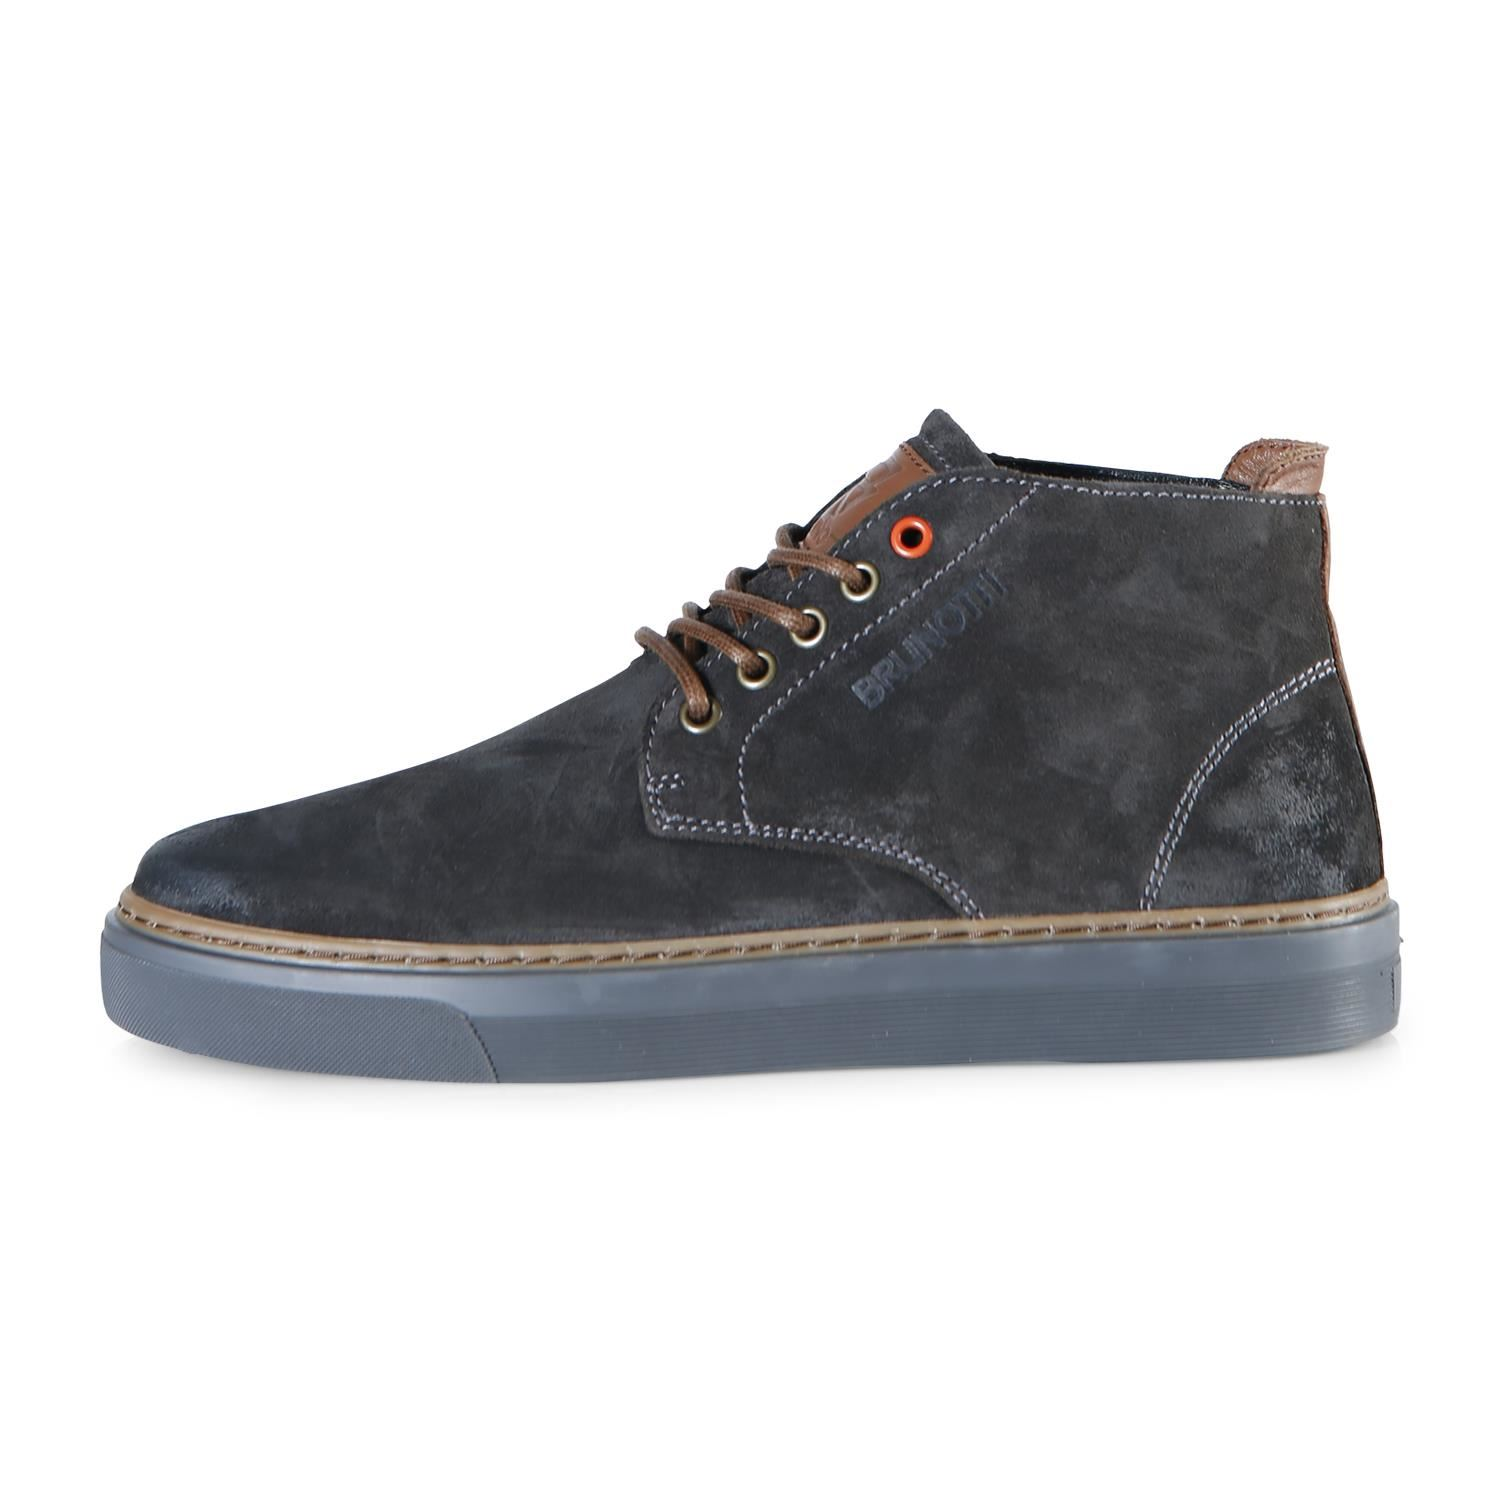 Brunotti Domburg  (grey) - men shoes - Brunotti online shop